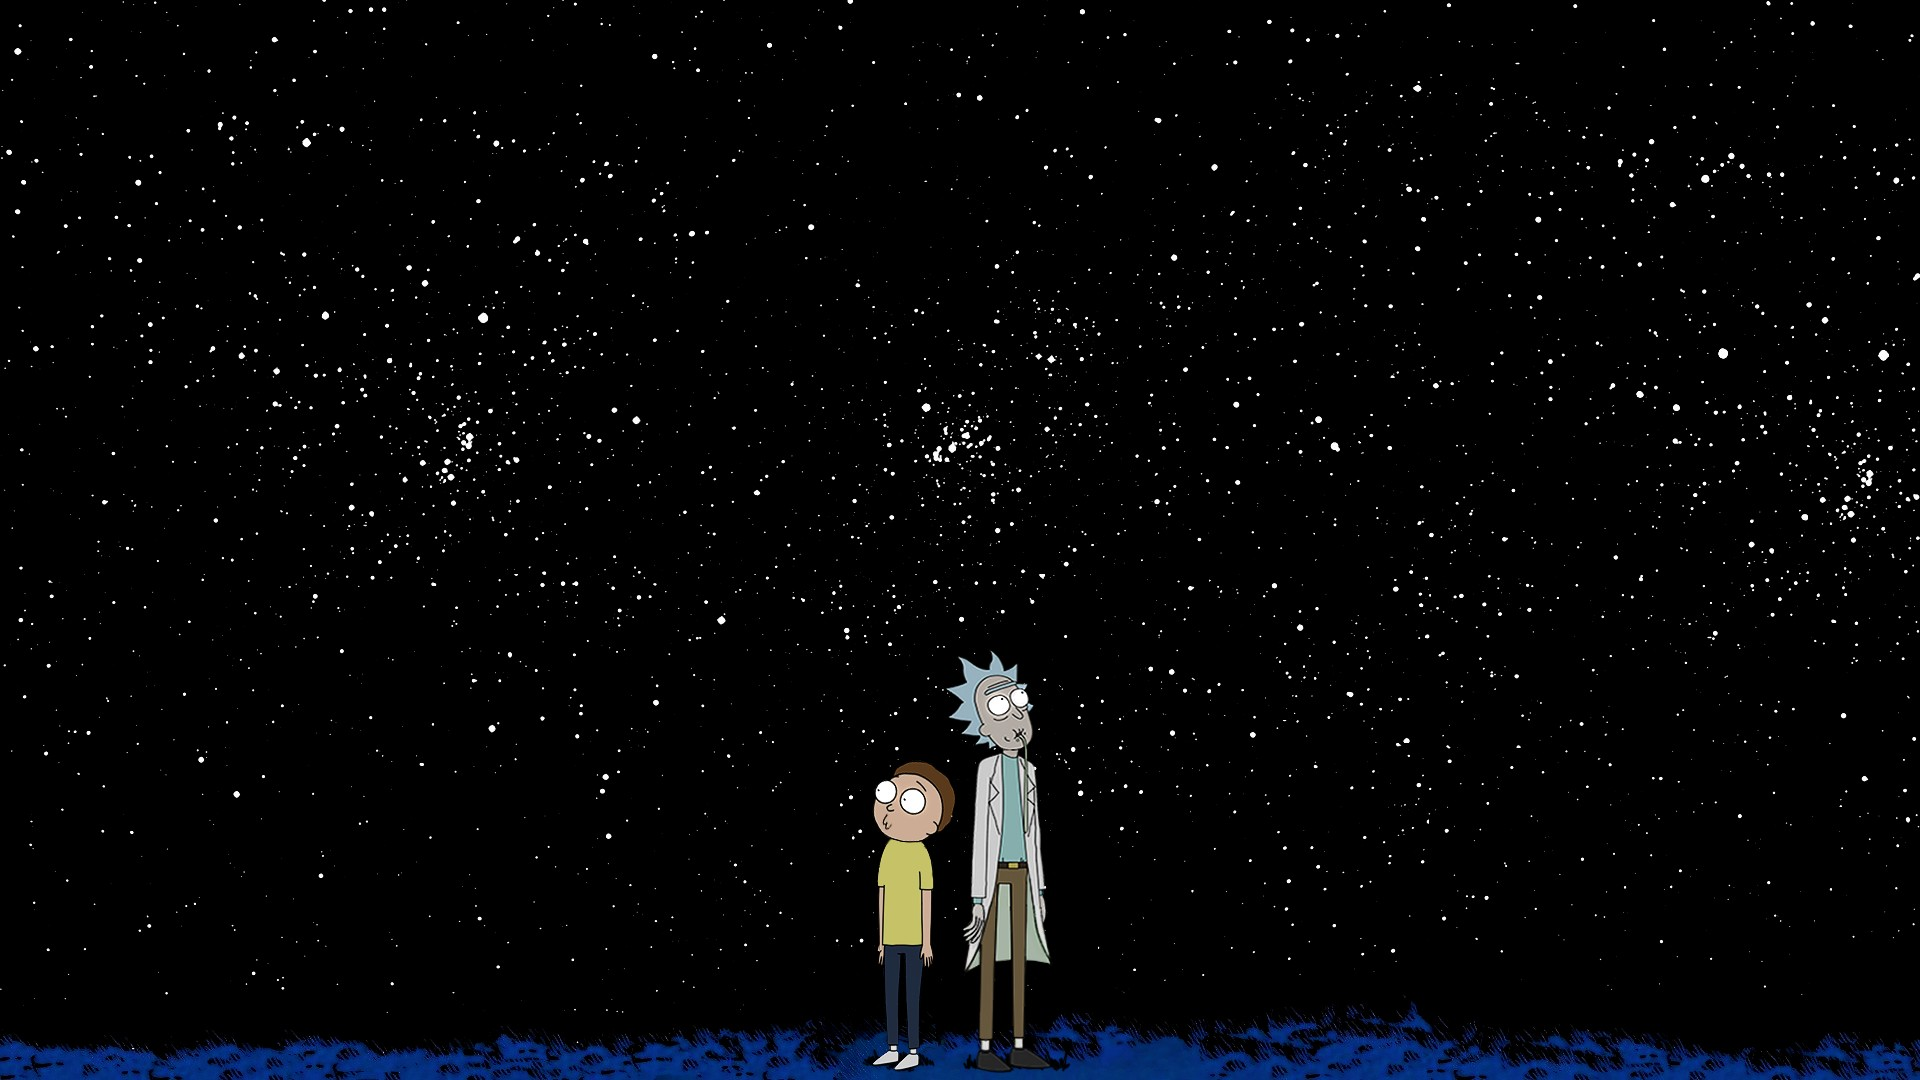 Rick And Morty Wallpaper Download Free Hd Wallpapers Of Rick